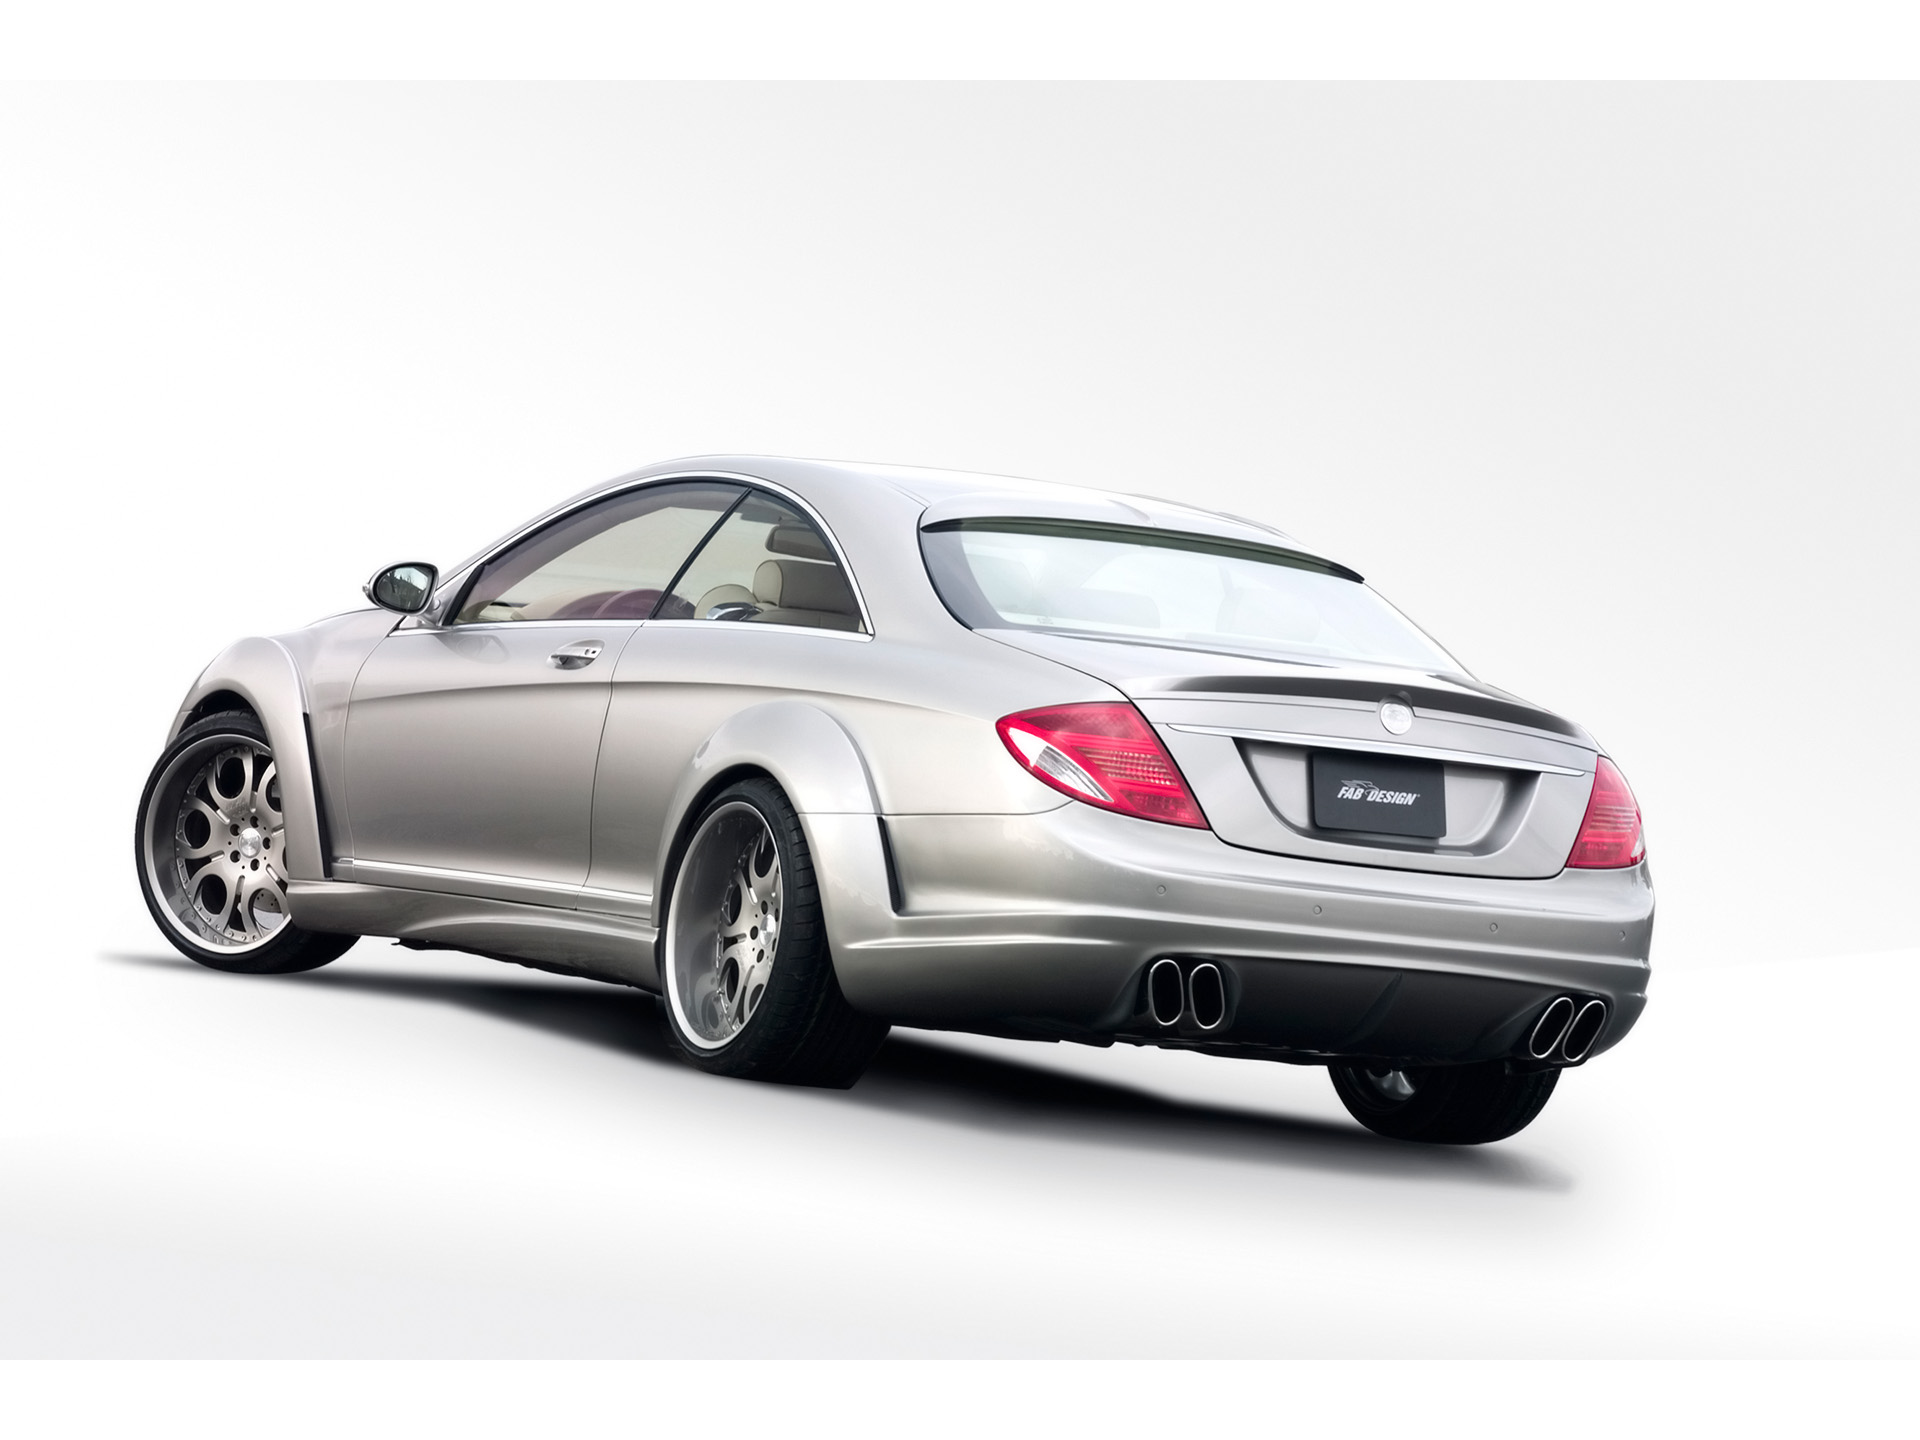 FAB Design Mercedes CL600 V12 Biturbo photos - PhotoGallery with 5 ...